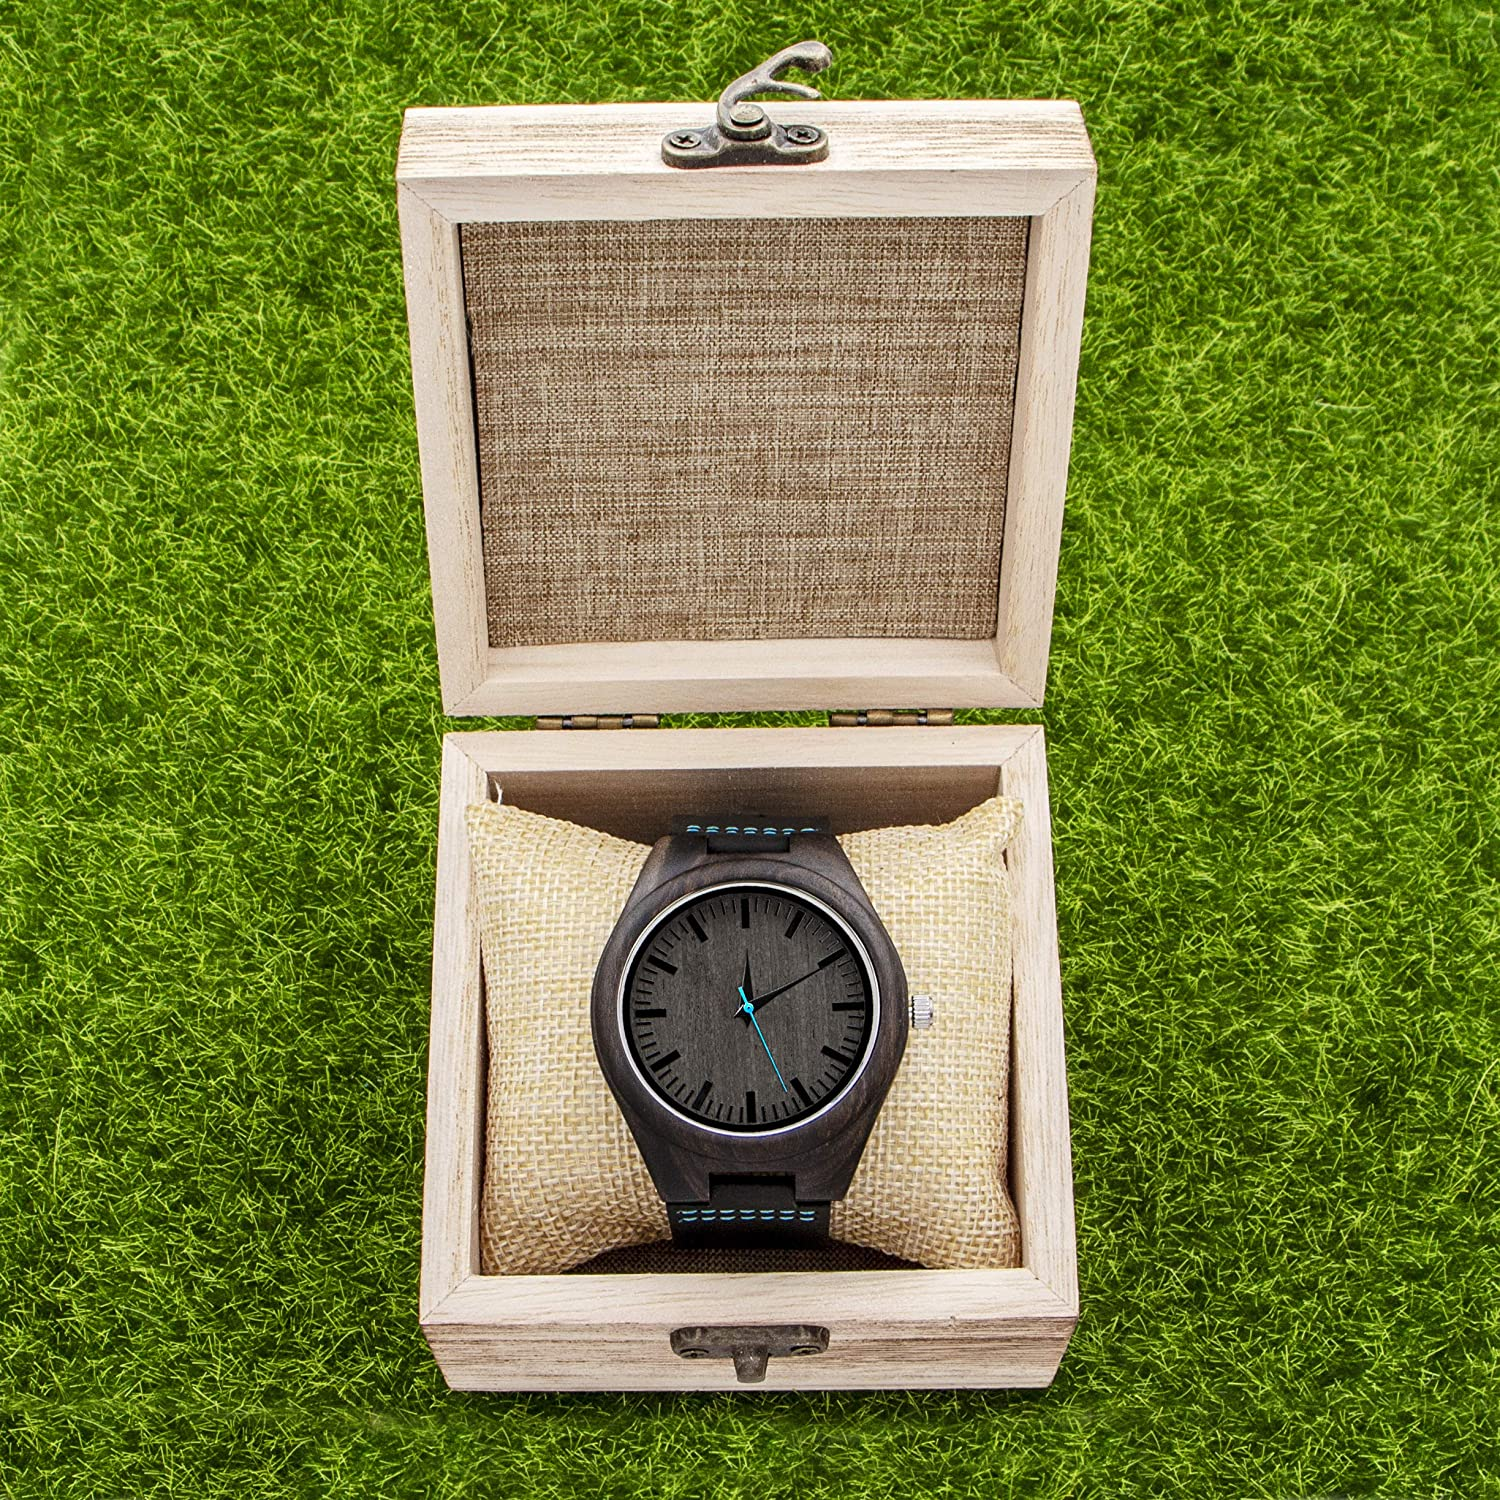 Amazon.com: Engraved Wooden Watches Personalized Gifts for Son, Father,Lovers Birthday,Anniversary Day,Groomsman Gift,with Wood Box (Blue-for Son): Kenon: ...